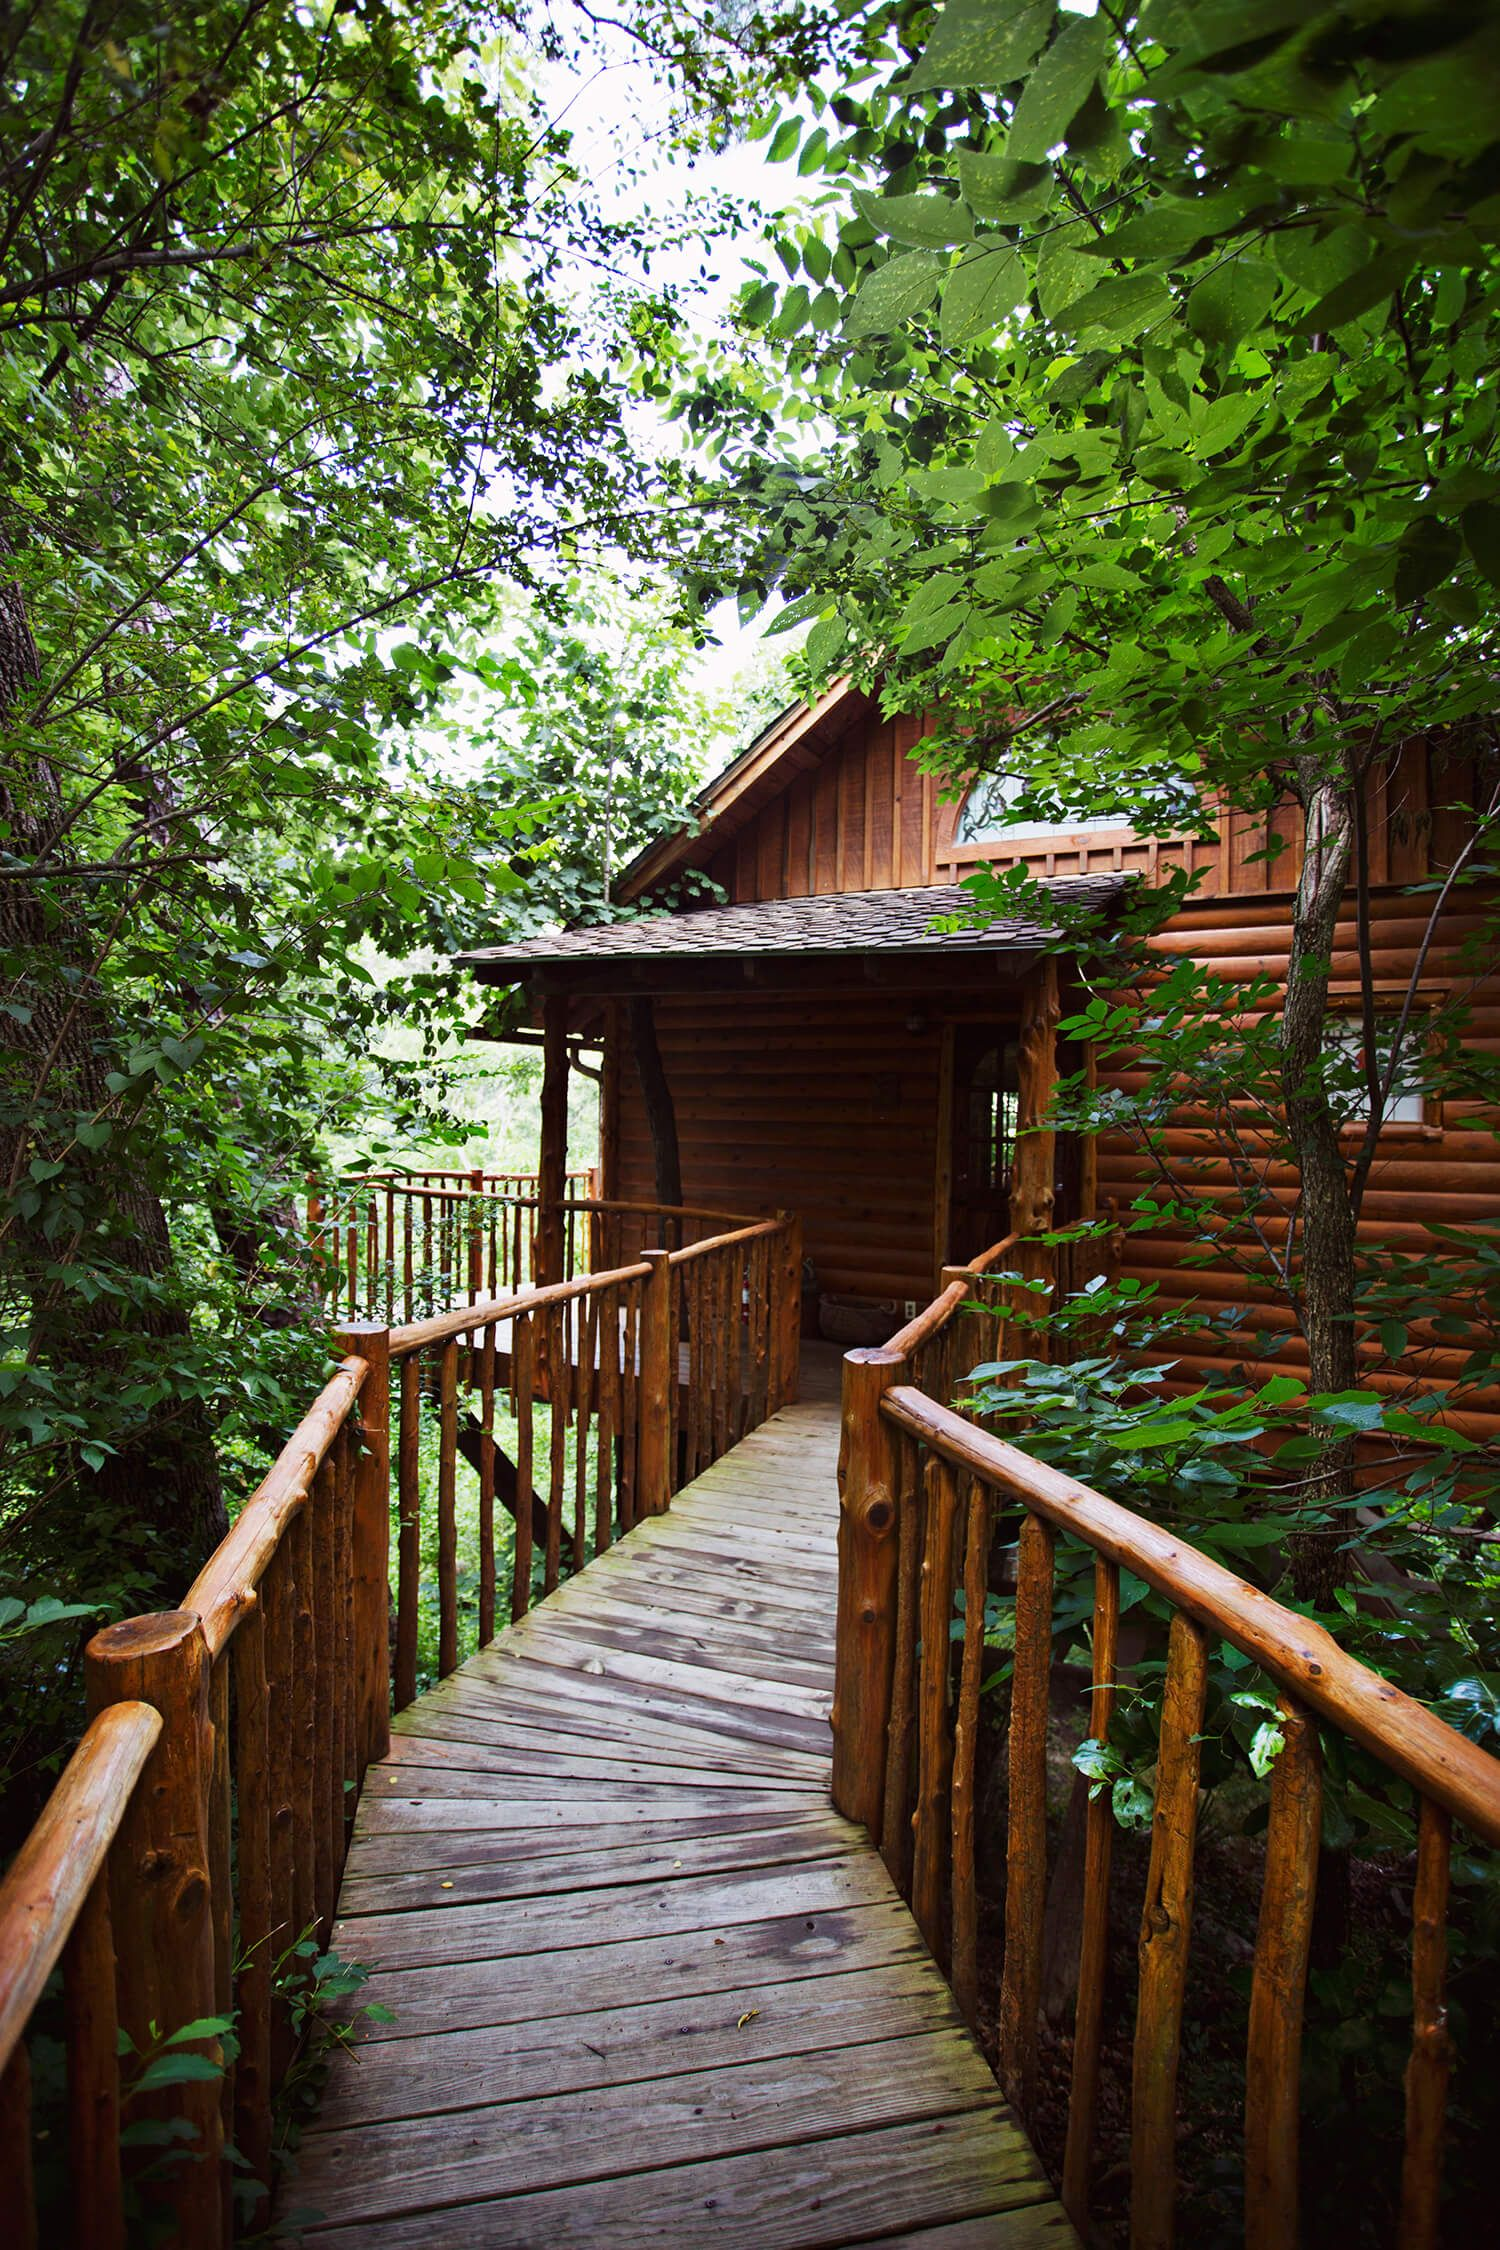 archives friendly bow pet cabins in category oklahoma cabin hideaway beavers broken treehouse